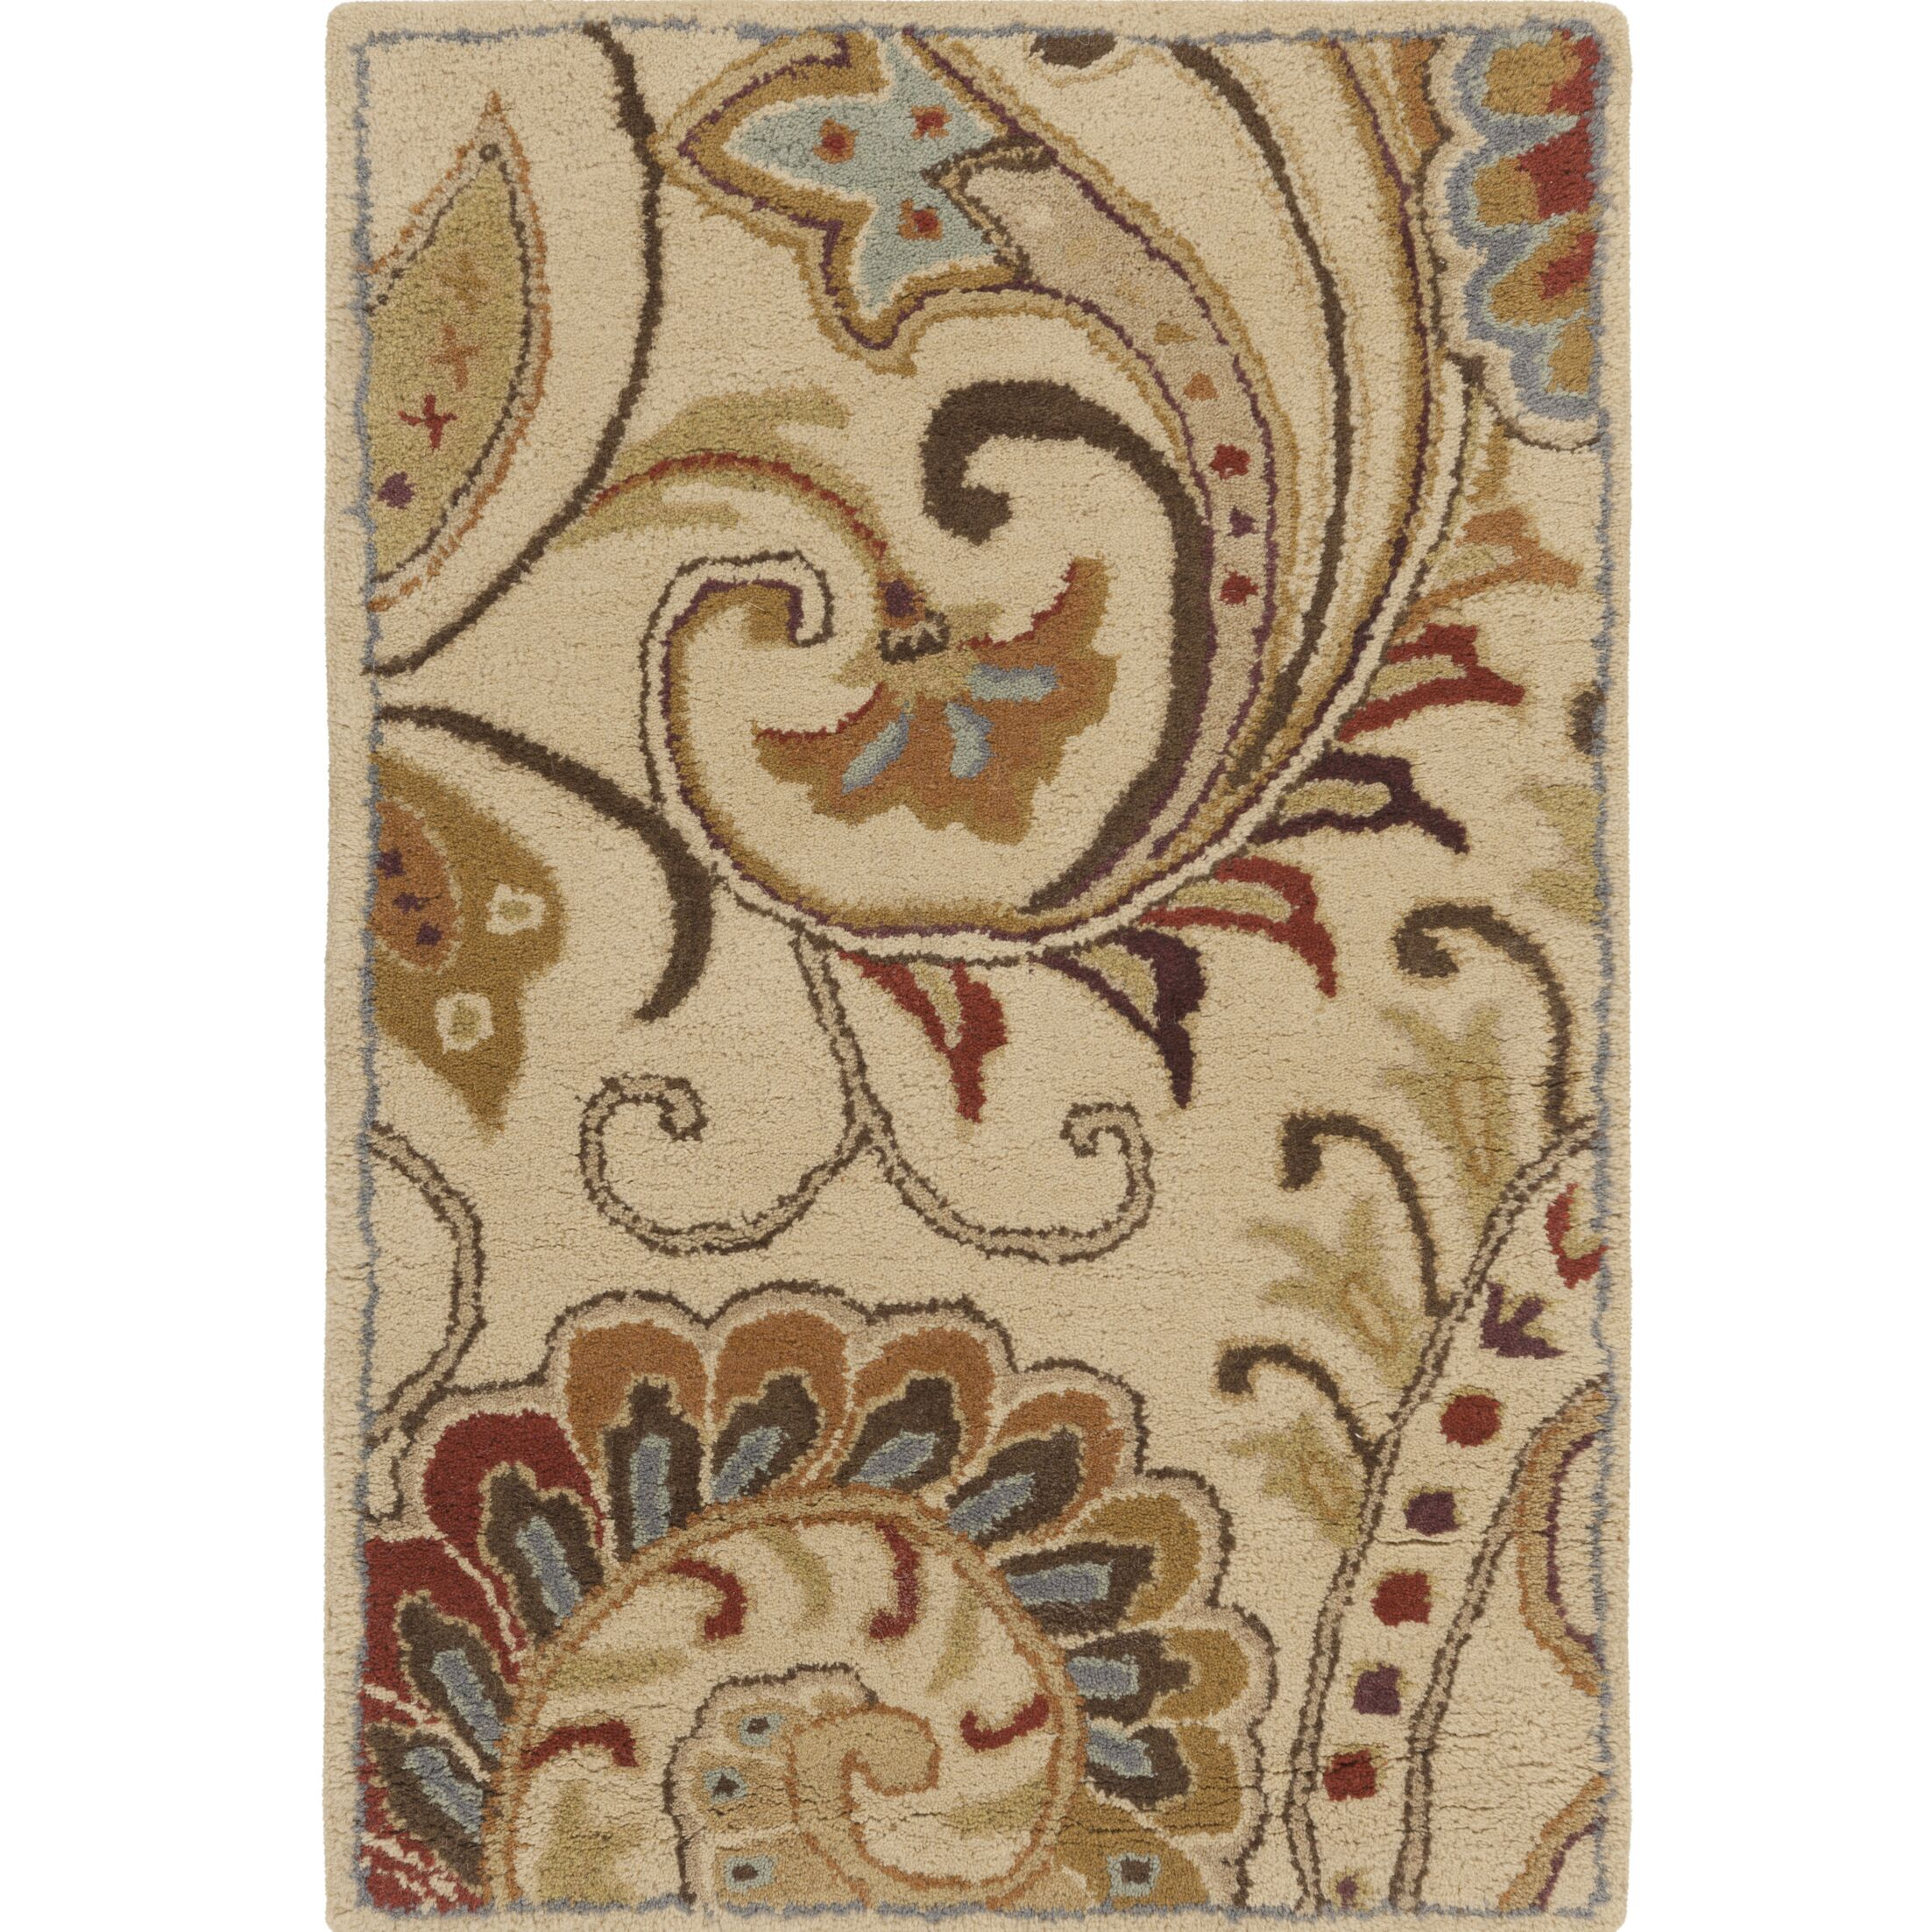 Forres Hand-Tufted Blue/Brown Area Rug Rug Size: Rectangle 2' x 3'